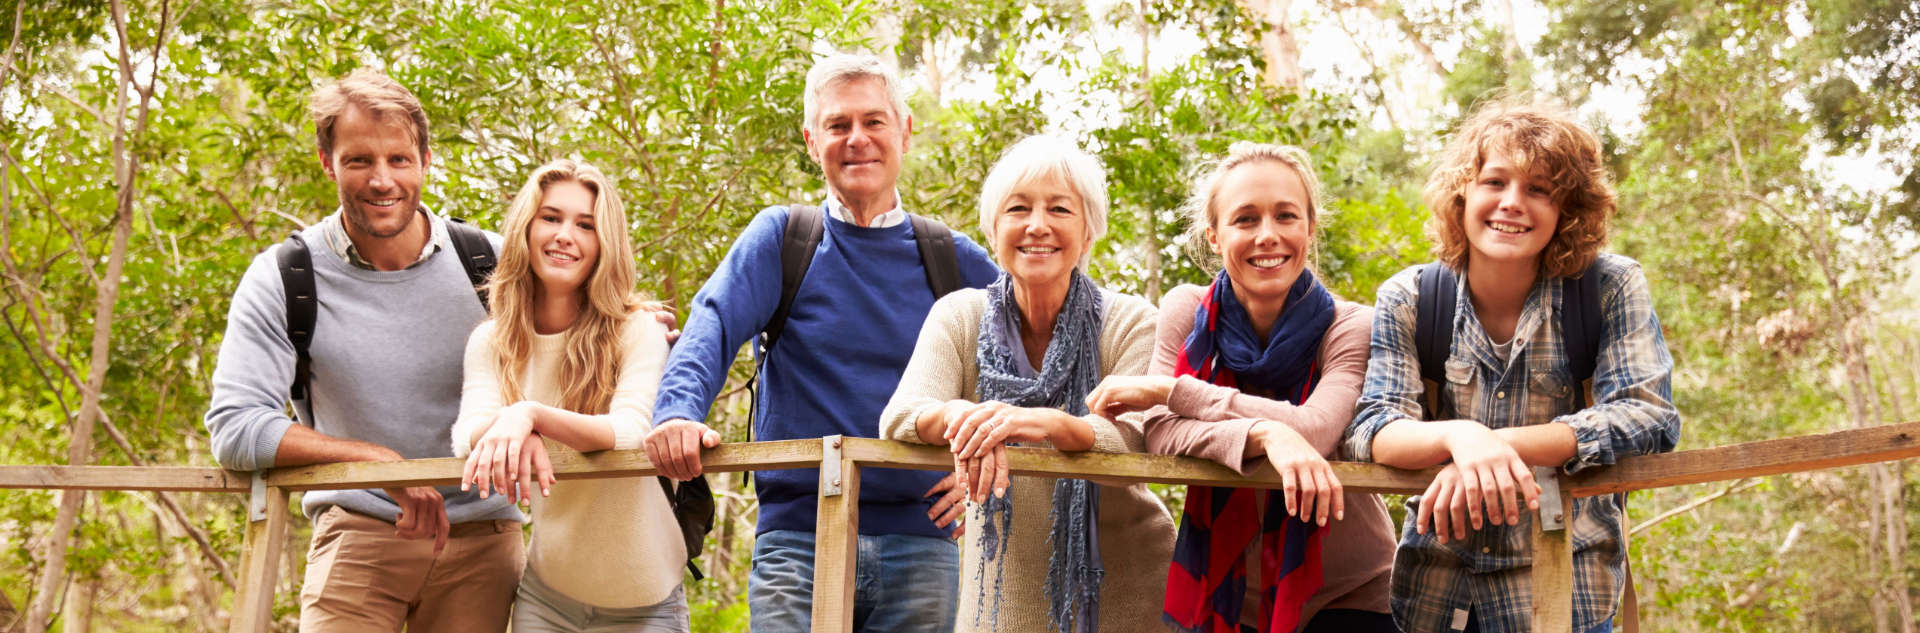 family of 6 smiling to the camera while standing on a bridge